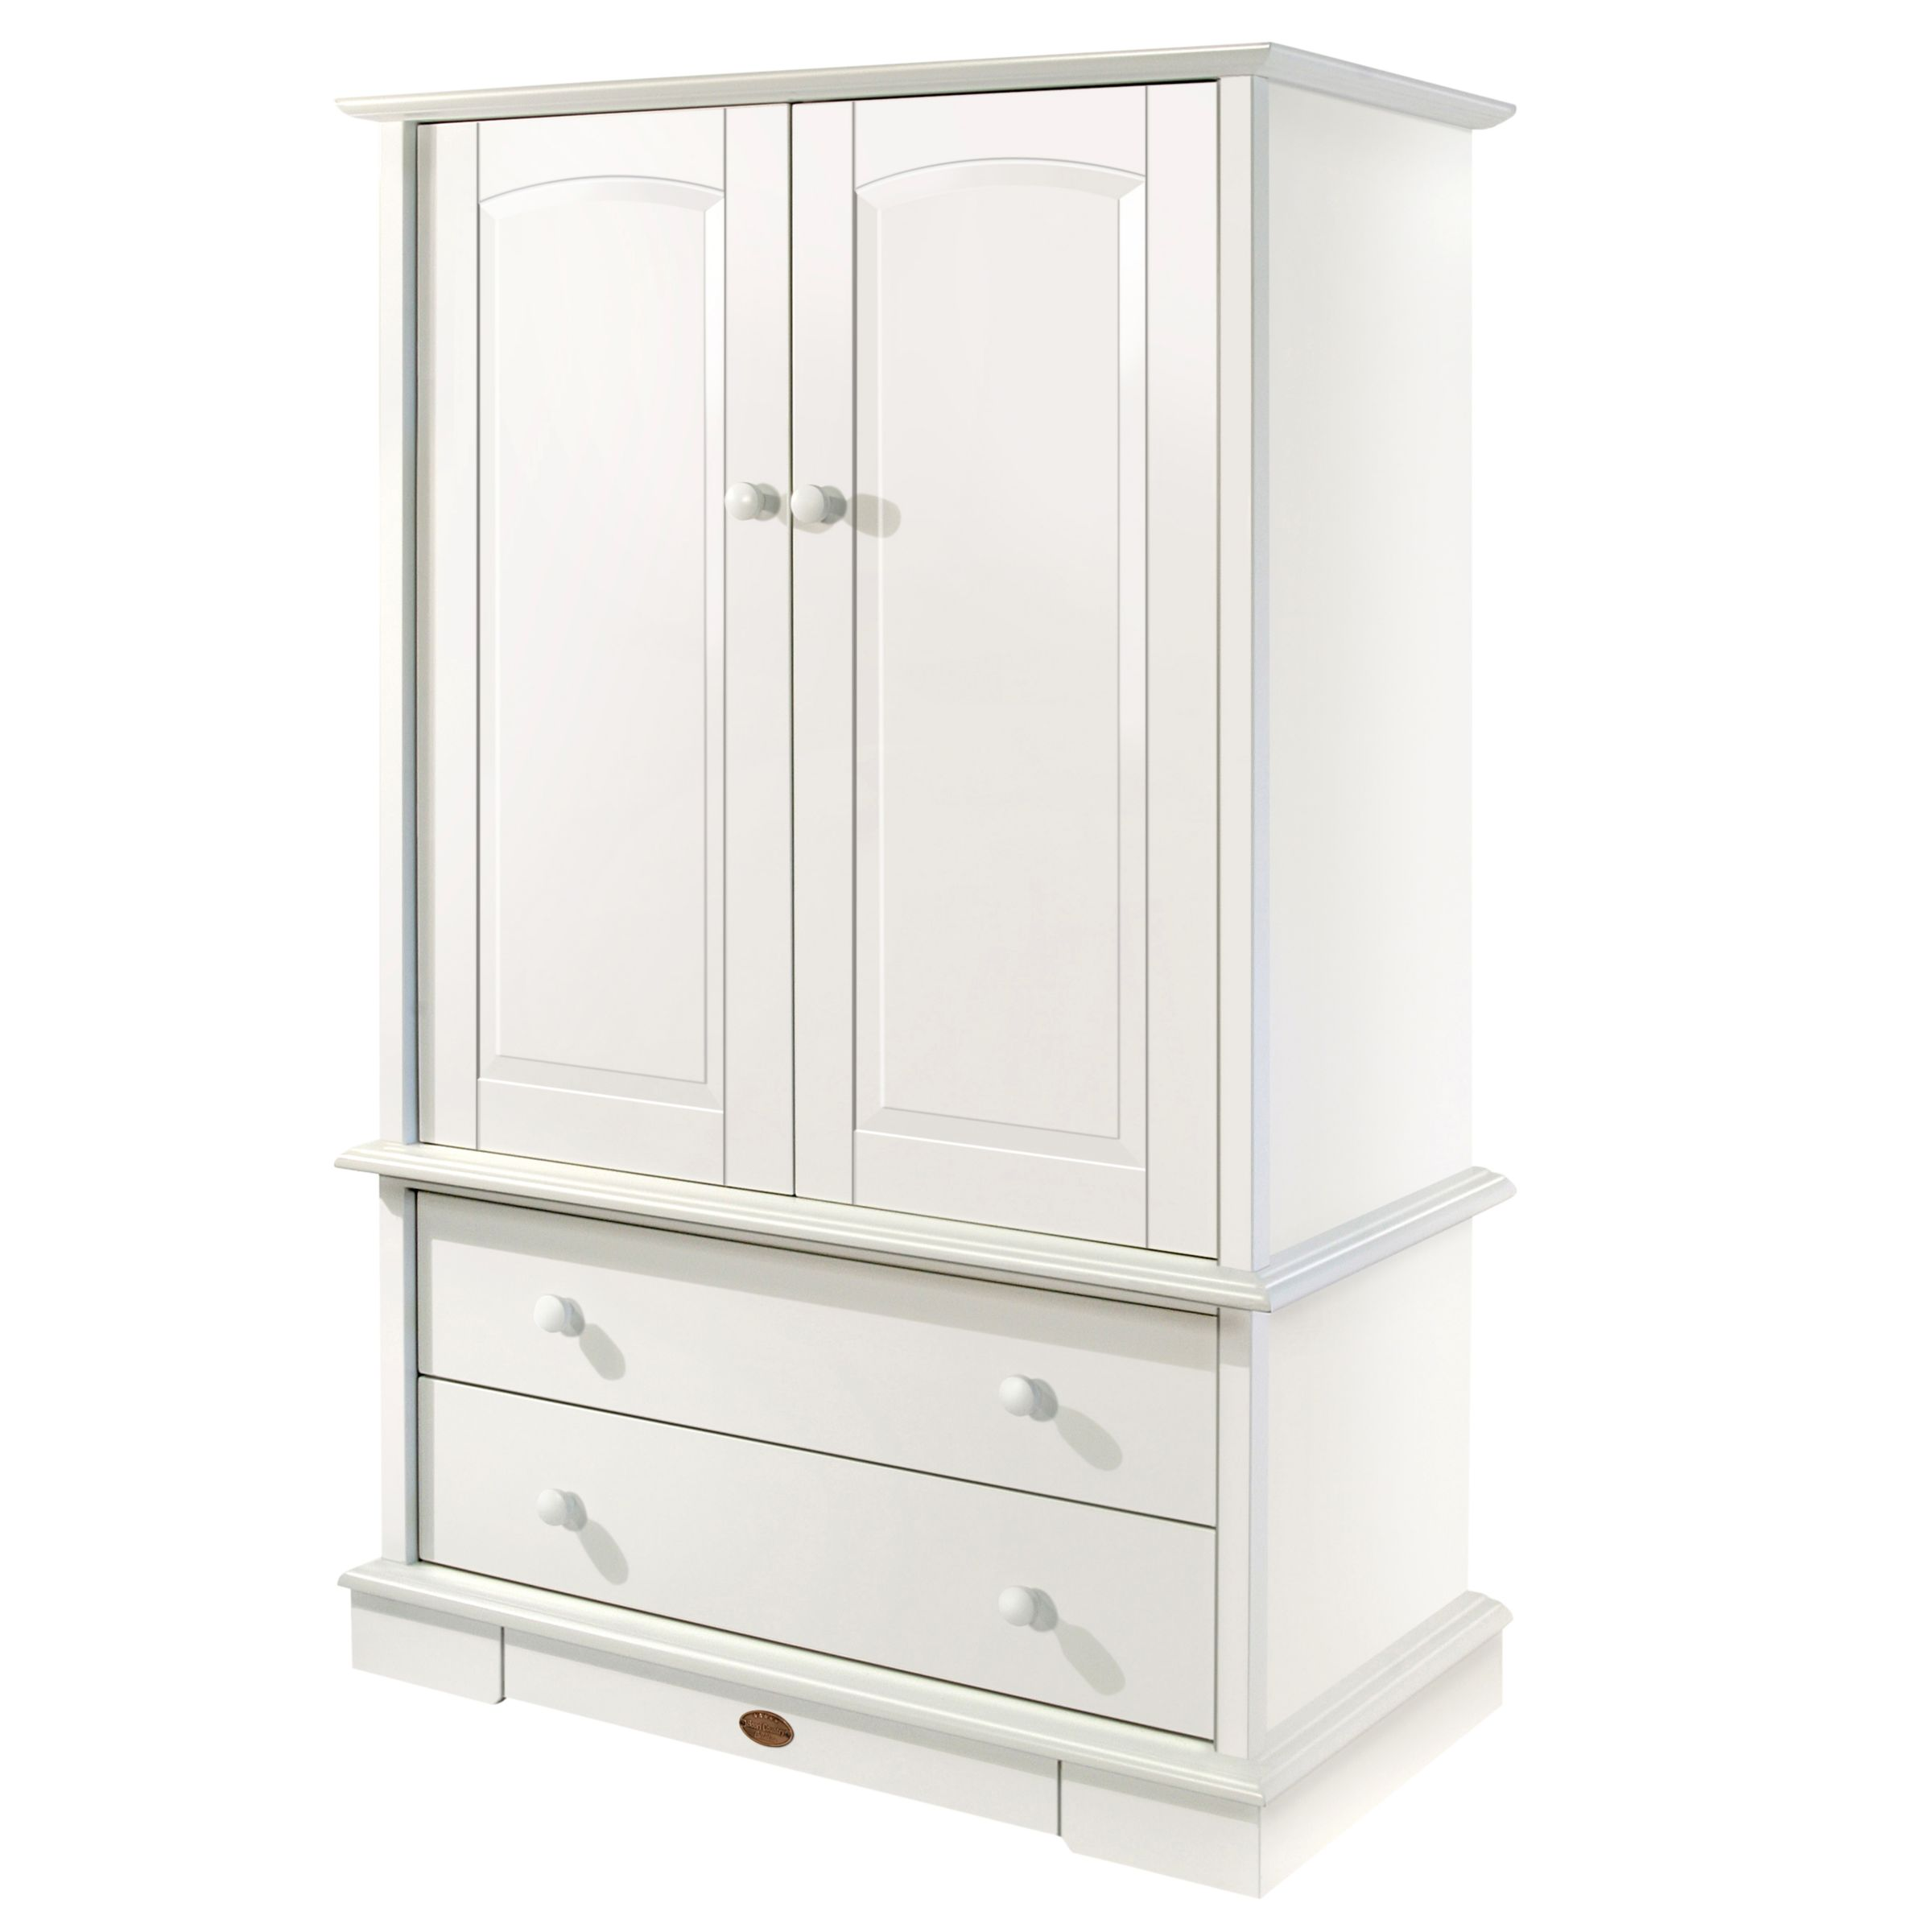 Nursery Wardrobe, White